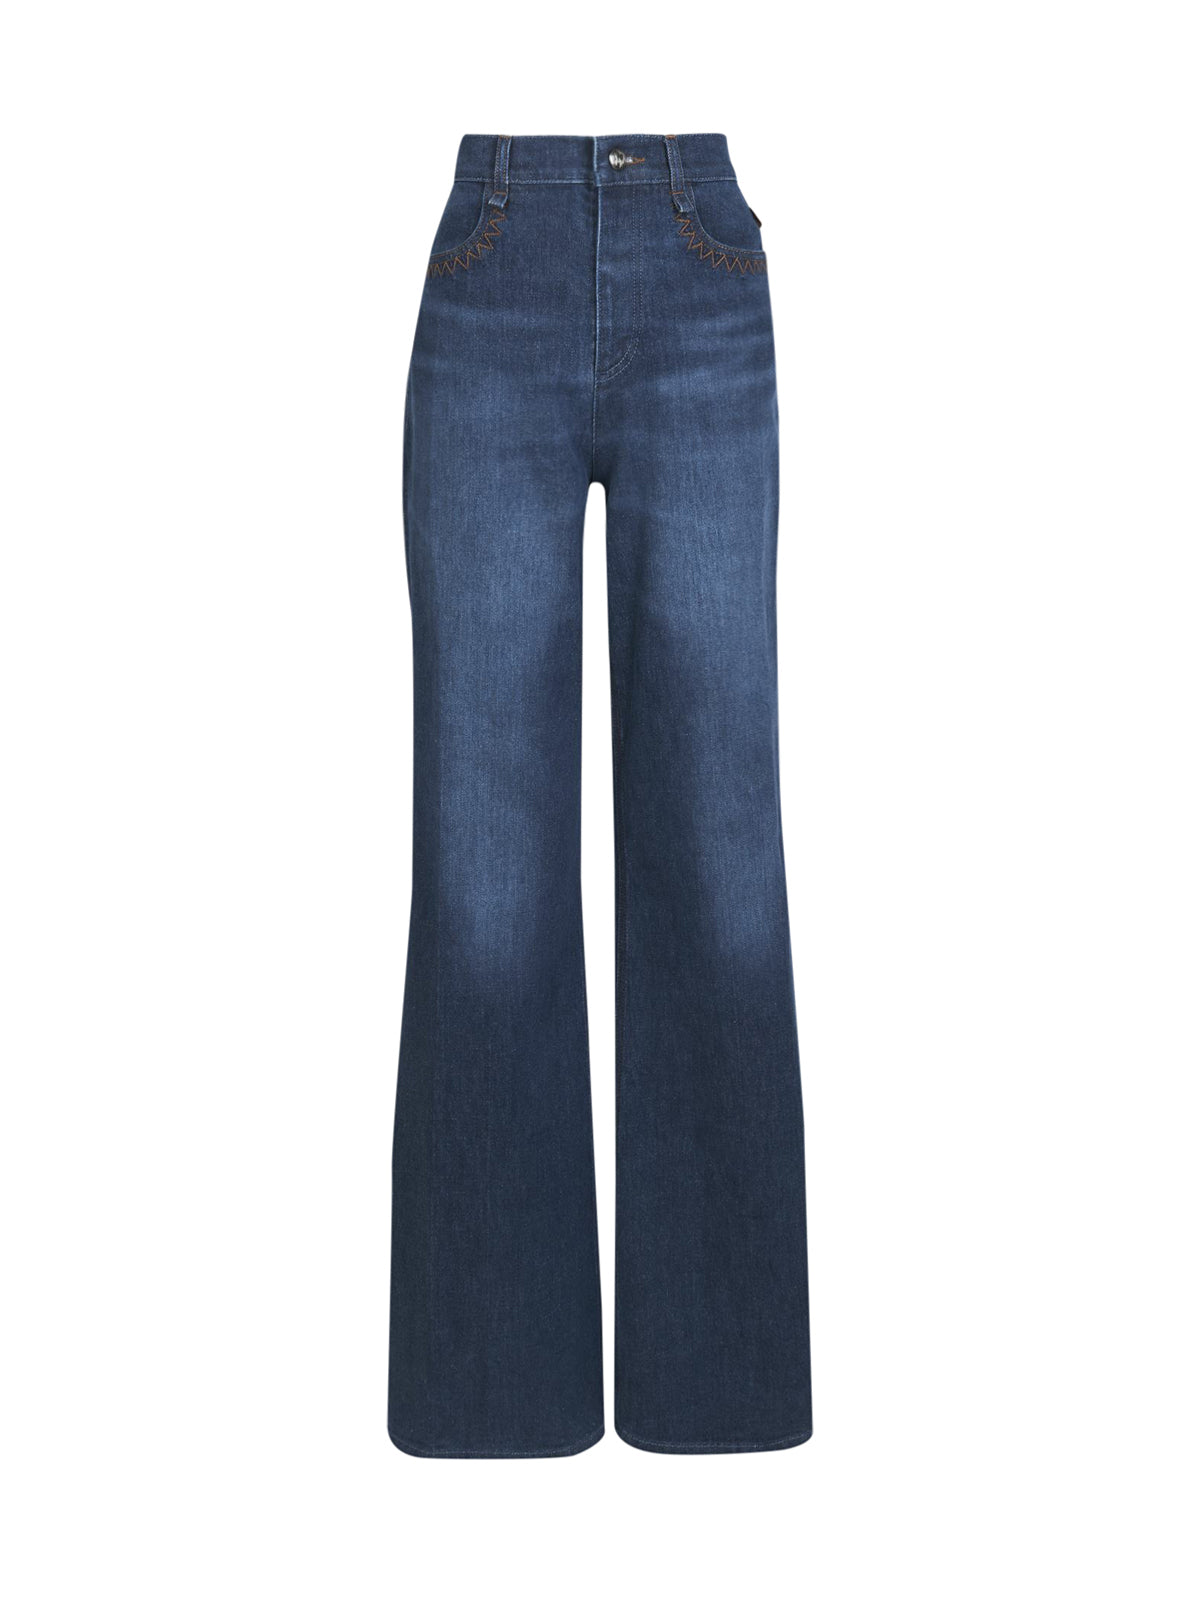 BELL JEANS WITH WIDE LEG